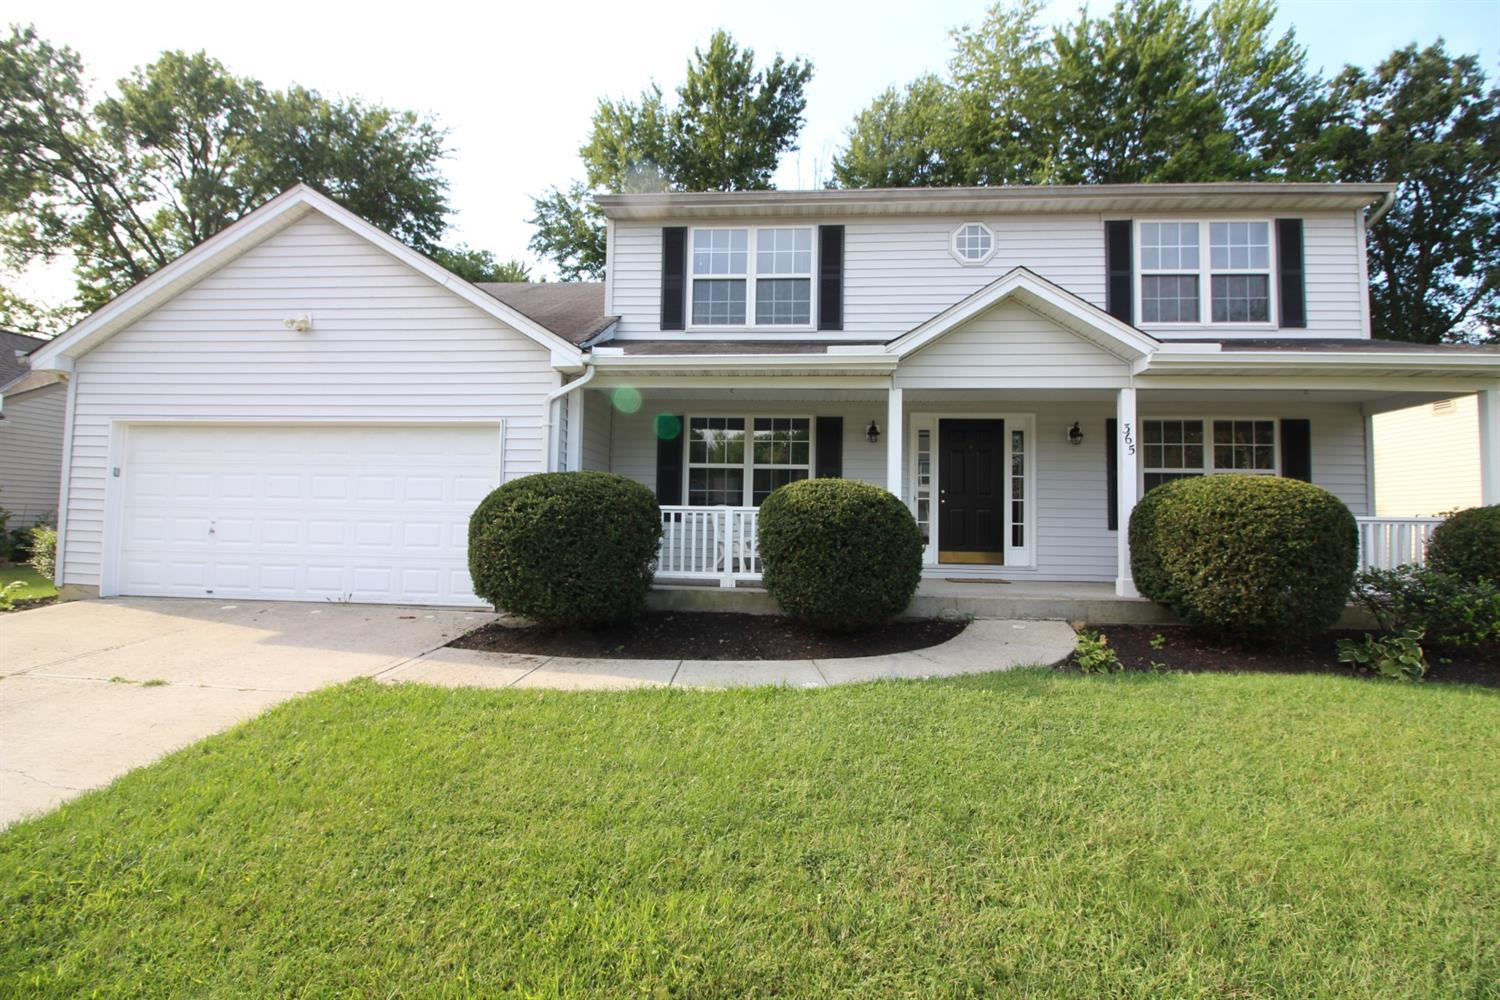 Property for sale at 365 Bunchberry Drive, Maineville,  Ohio 45039